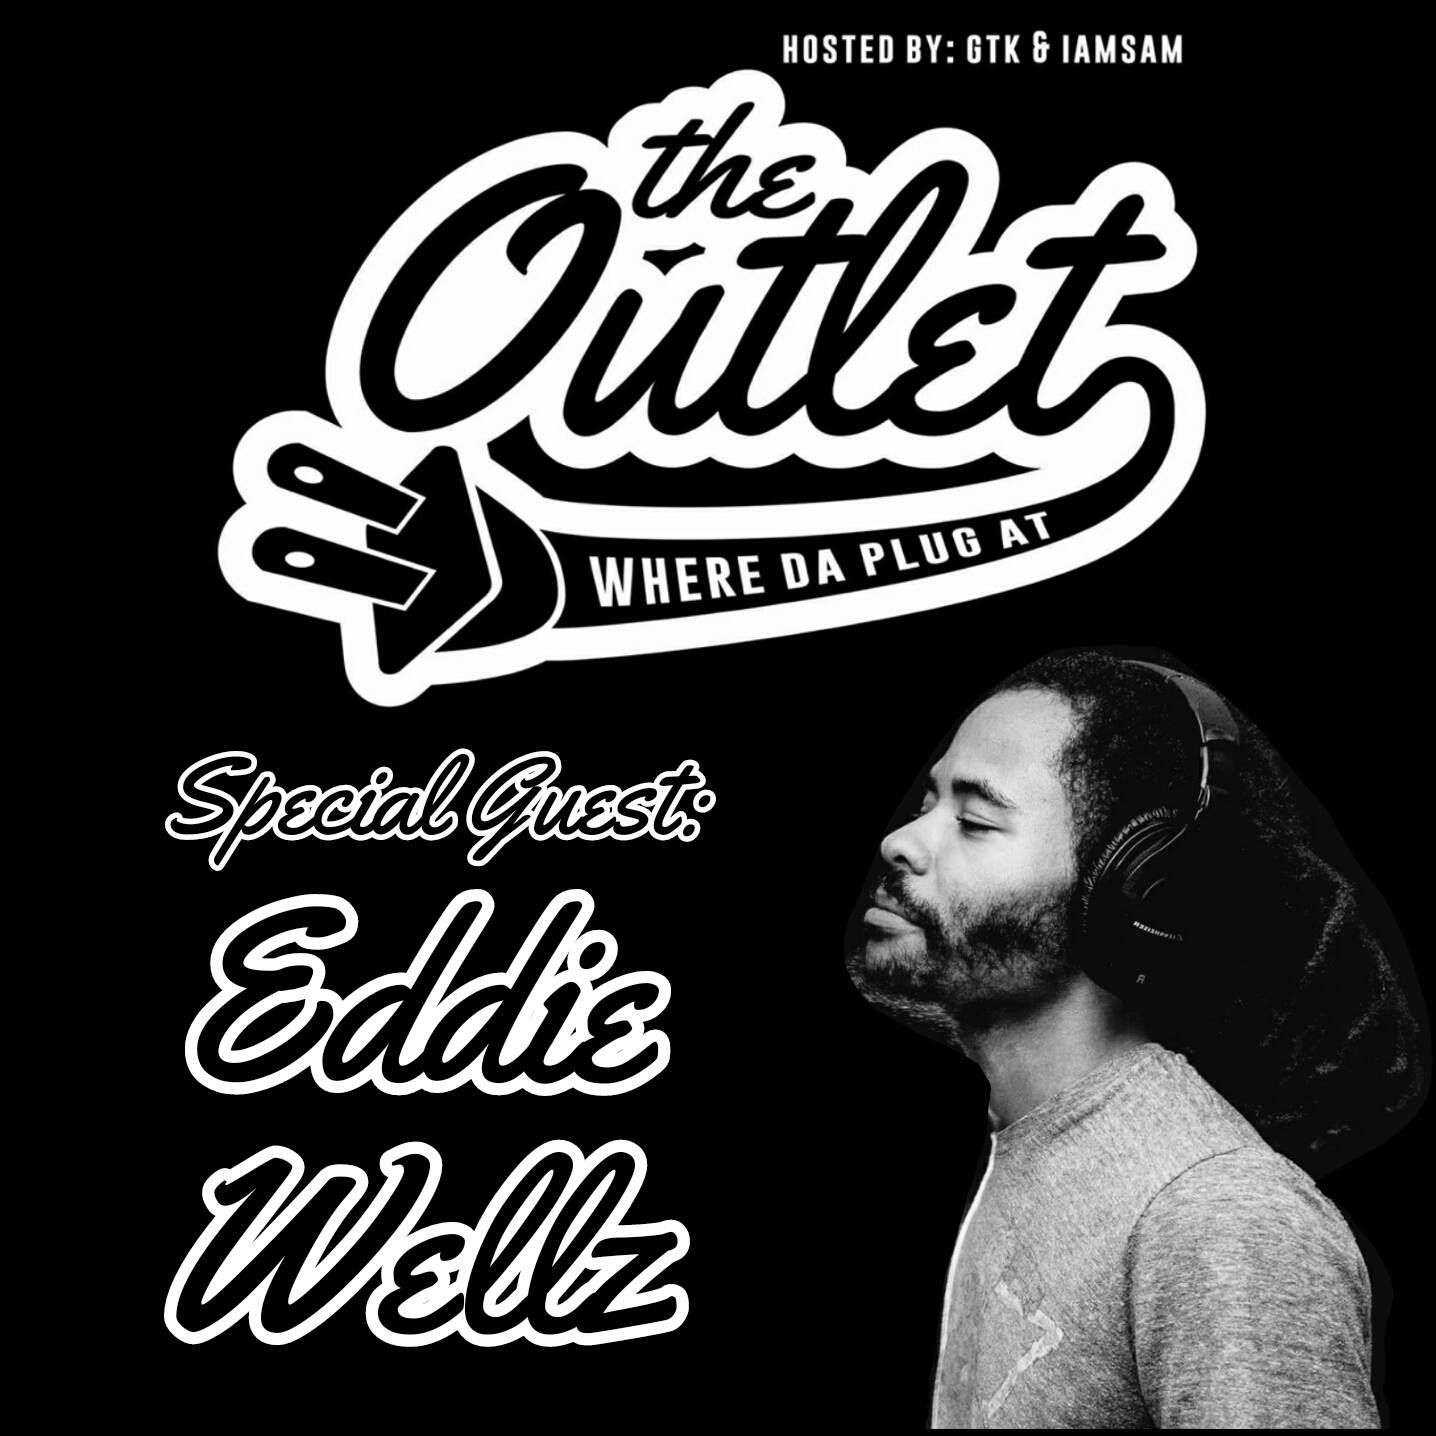 The Eddie Wellz Episode - The Outlet Podcast: Hosted by GTK & IAMSAM